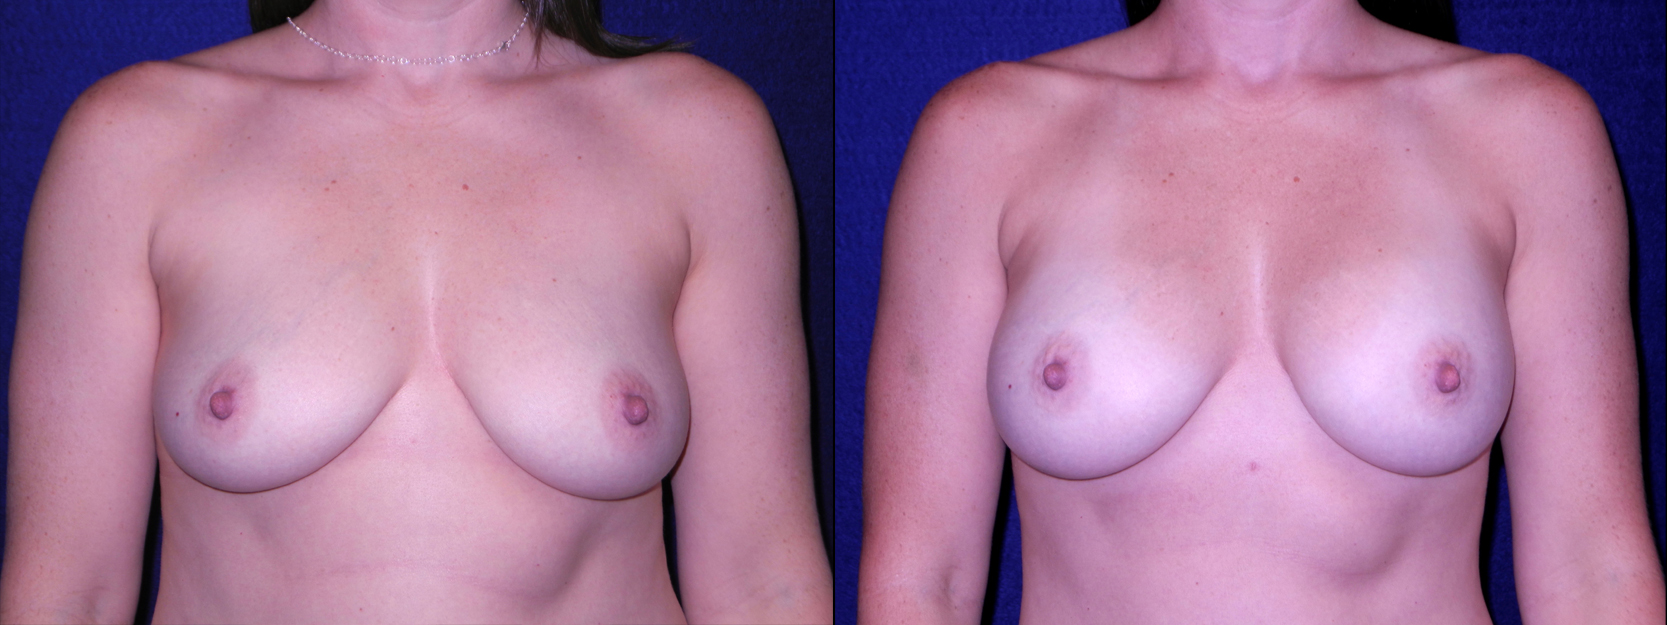 Frontal View - Breast Augmentation